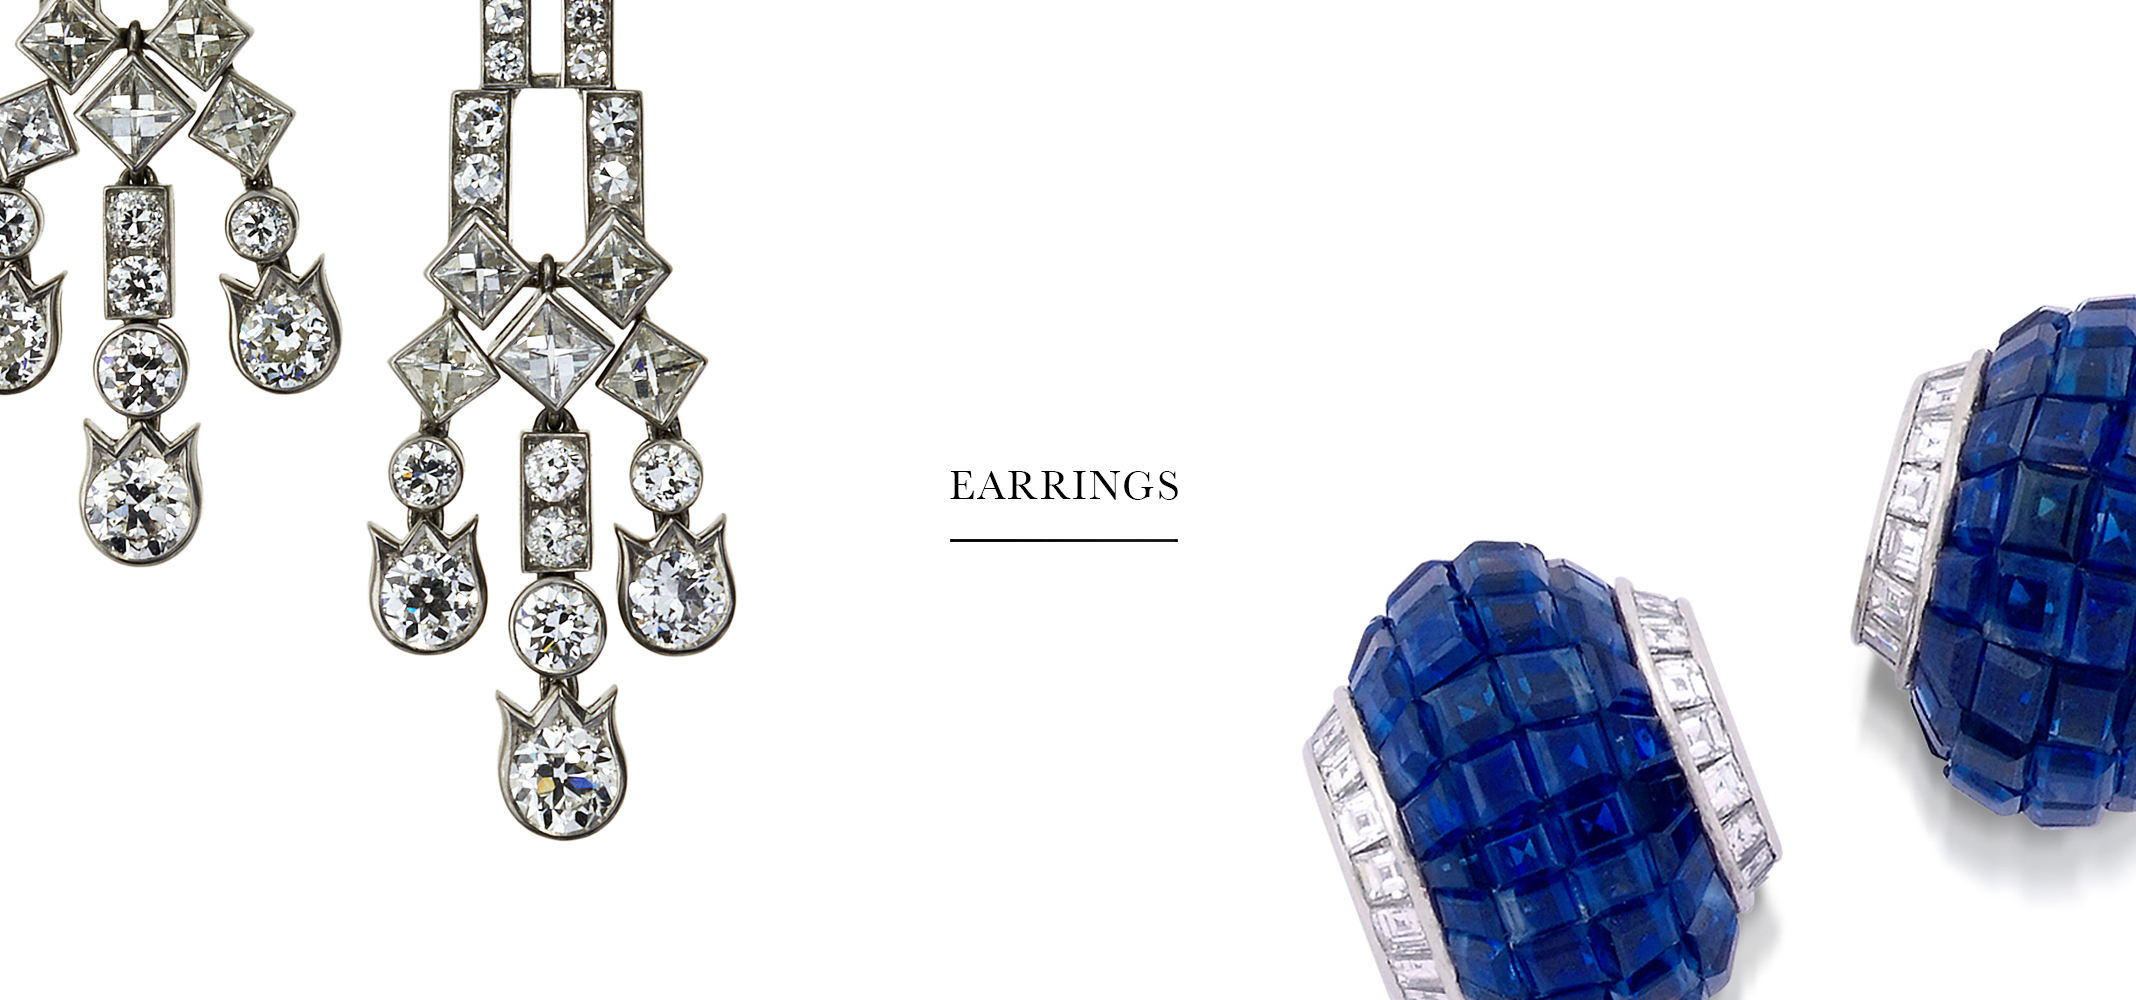 Earrings Banner 1.jpg